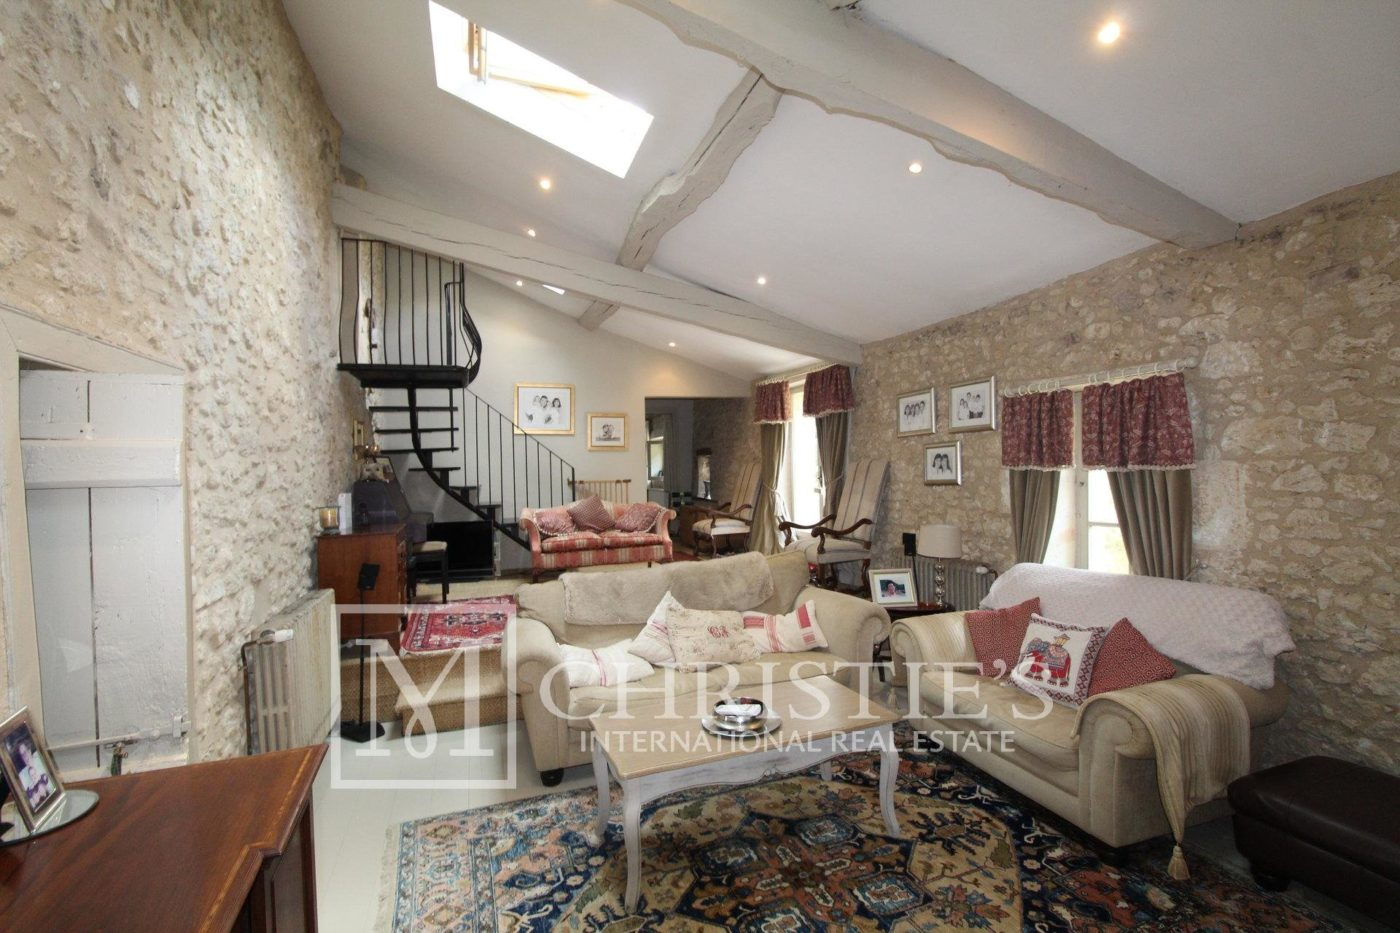 Living-room - Attractive AOC Côtes-de-Duras vineyard with residence, gîte and swimming pool